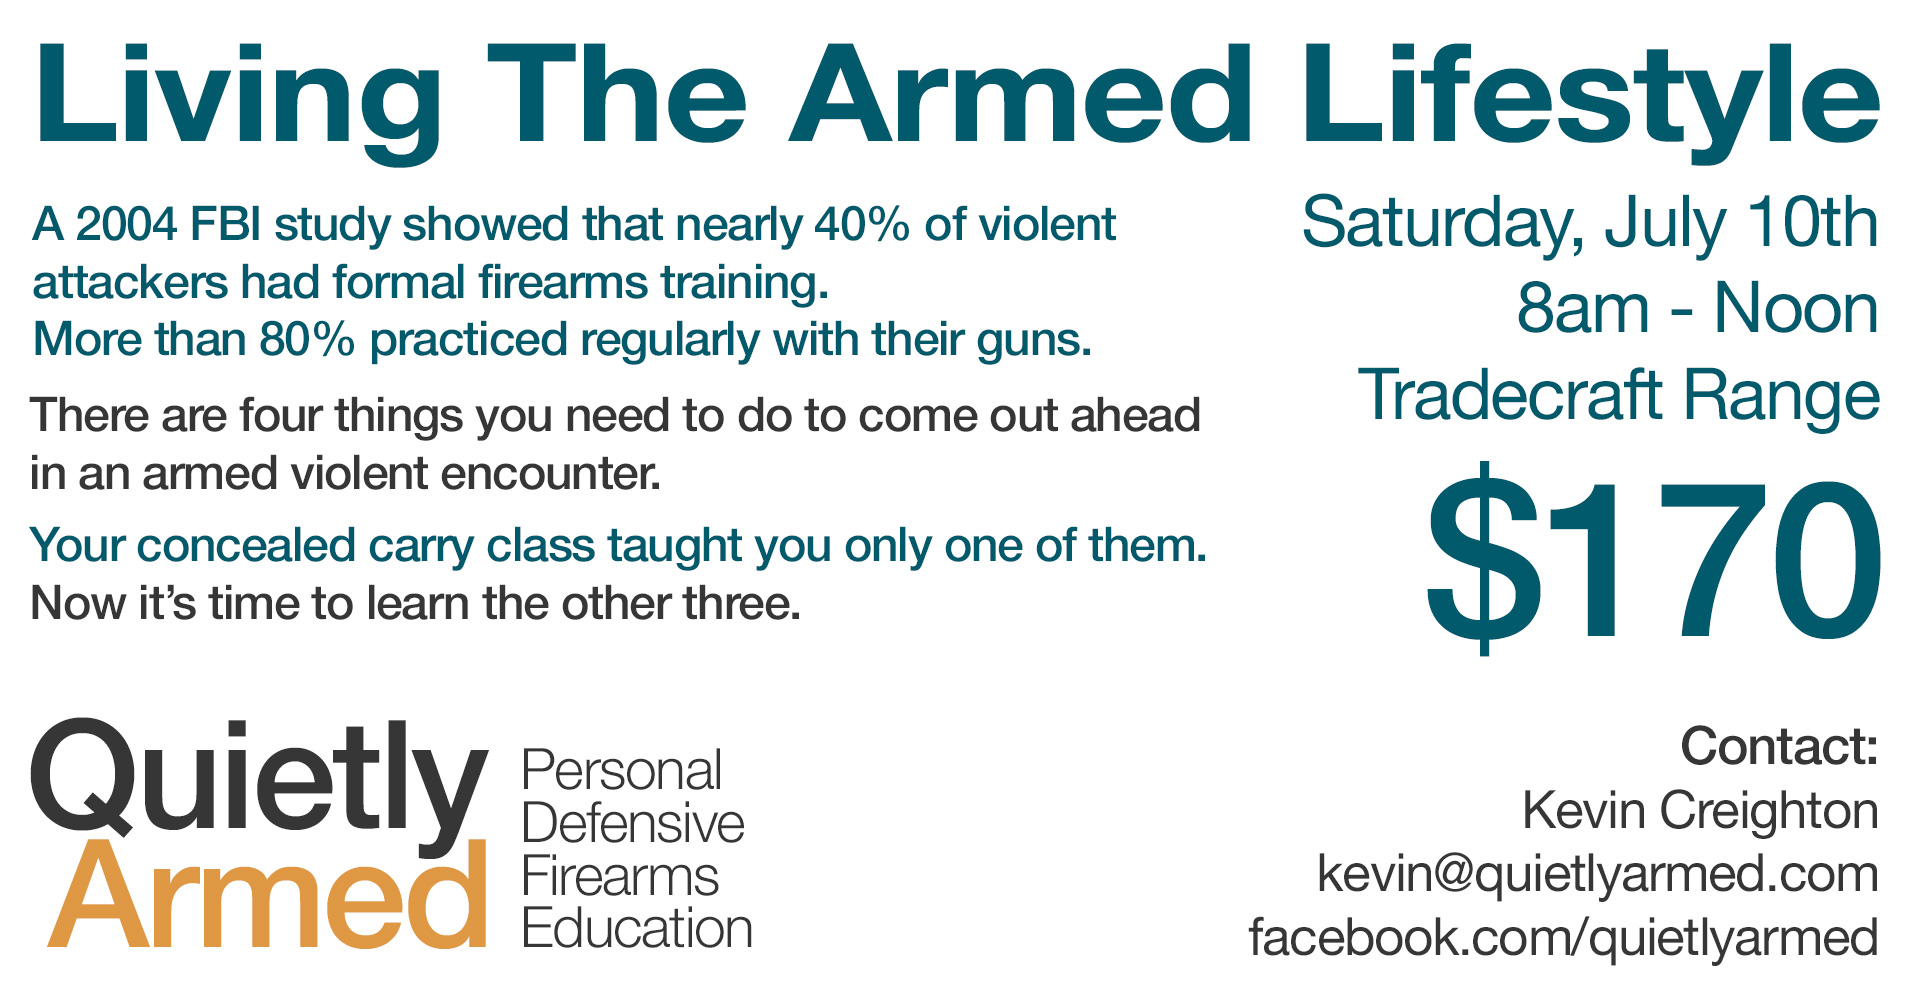 Introduction To The Armed Lifestyle